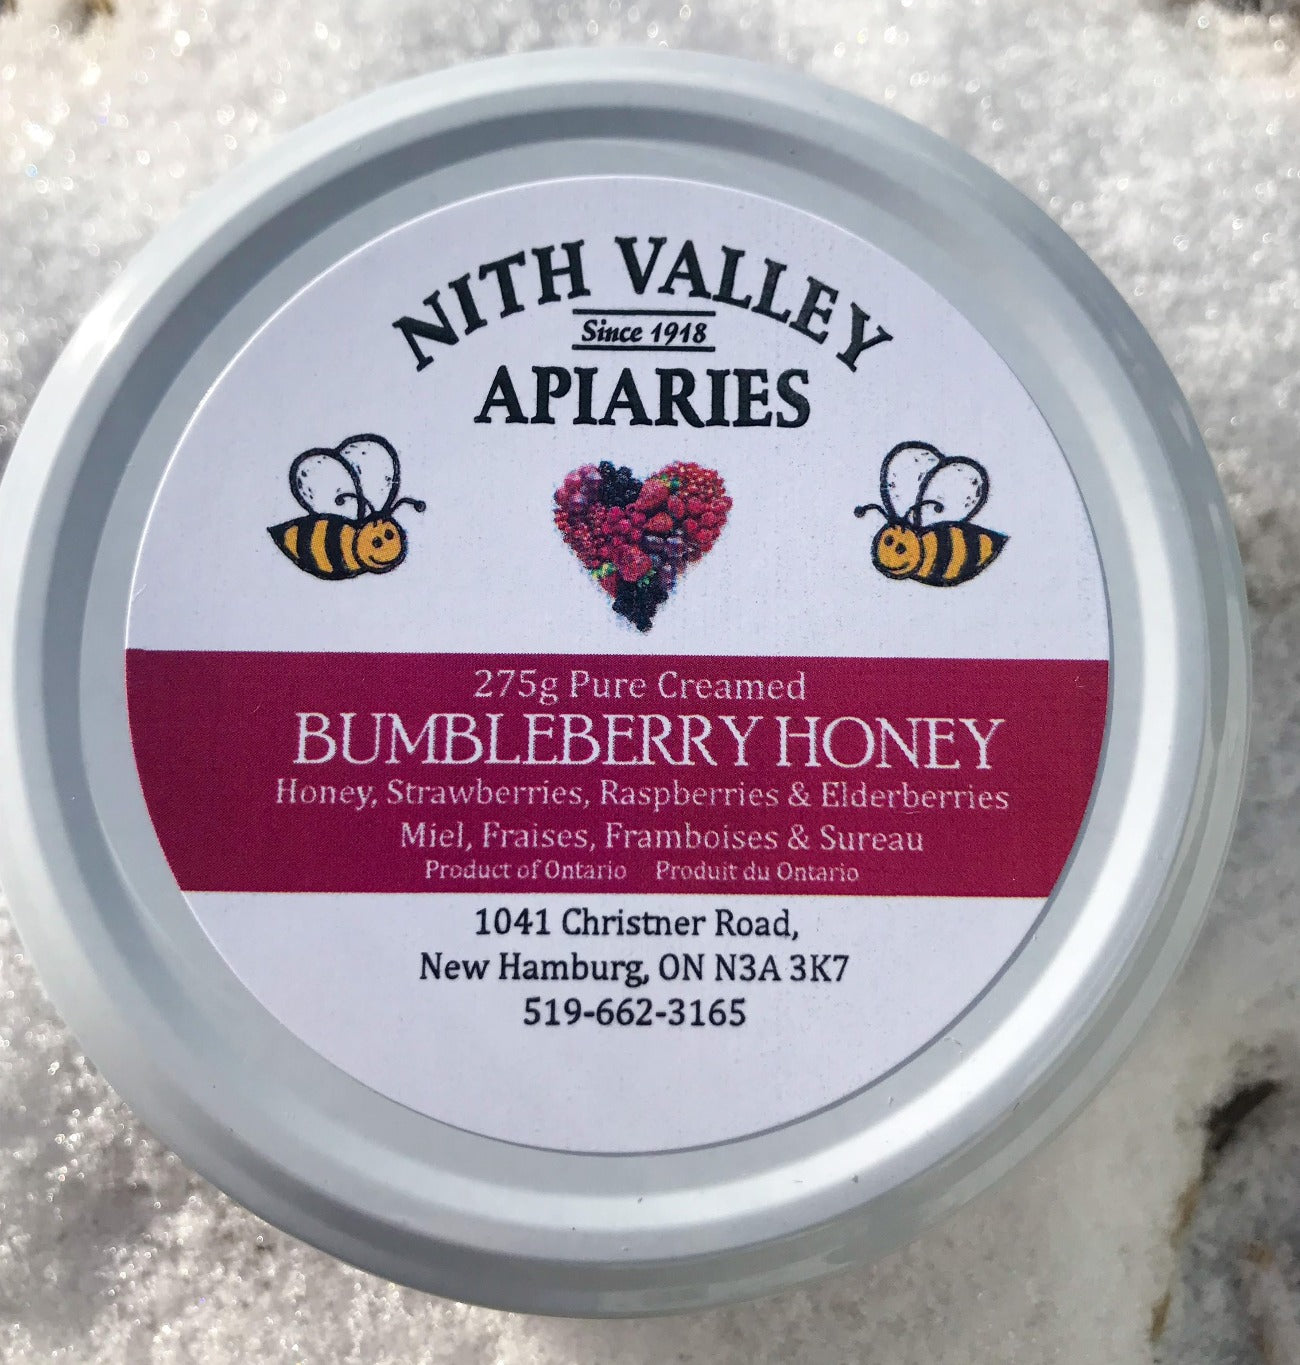 Bumbleberry Honey